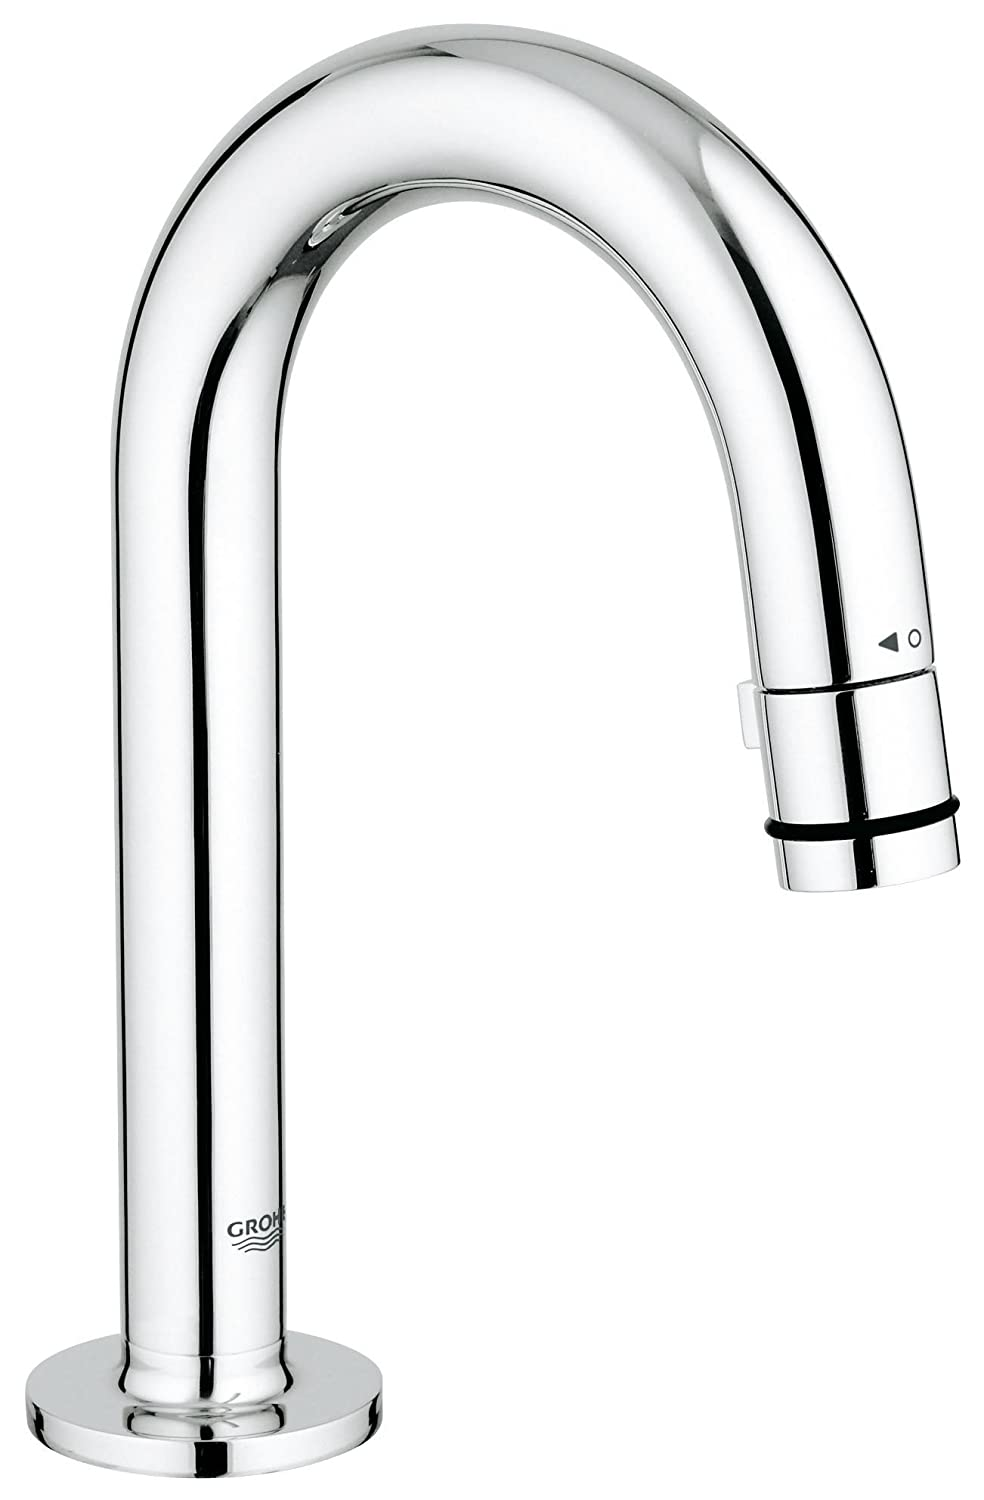 GROHE Robinet Universel Monofluide 20201000 (Import Allemagne)